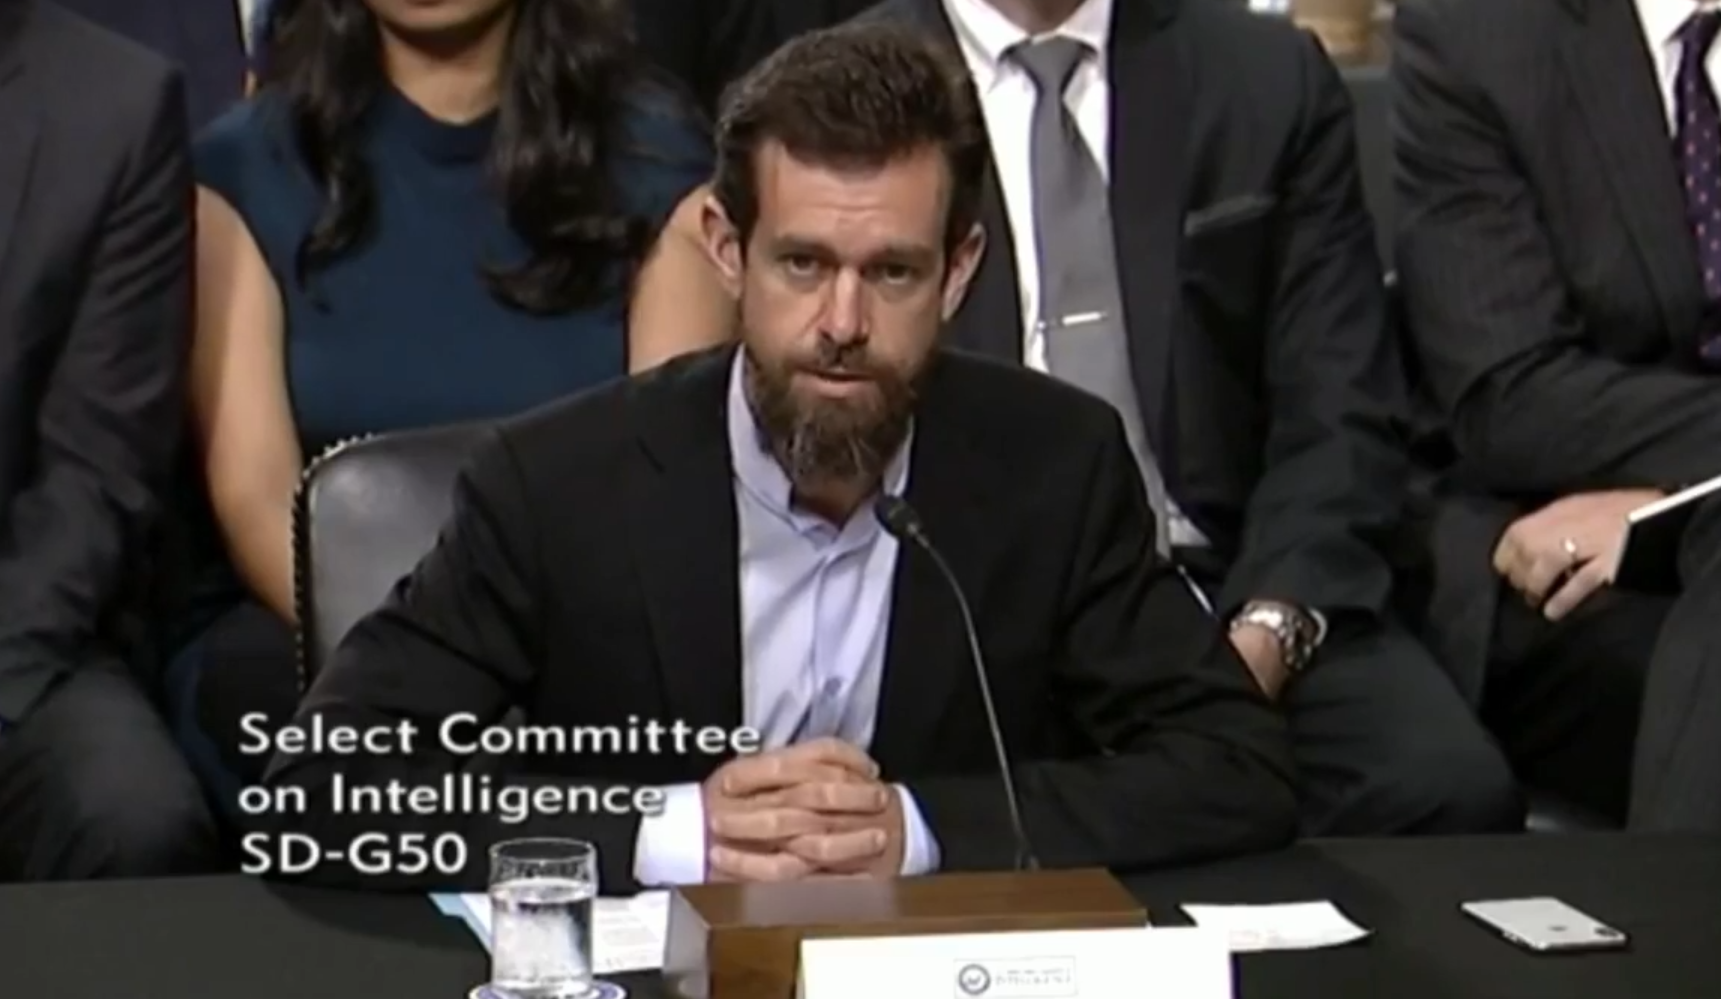 Twitter's Dorsey dodges question on whether Trump's tweets are abusive